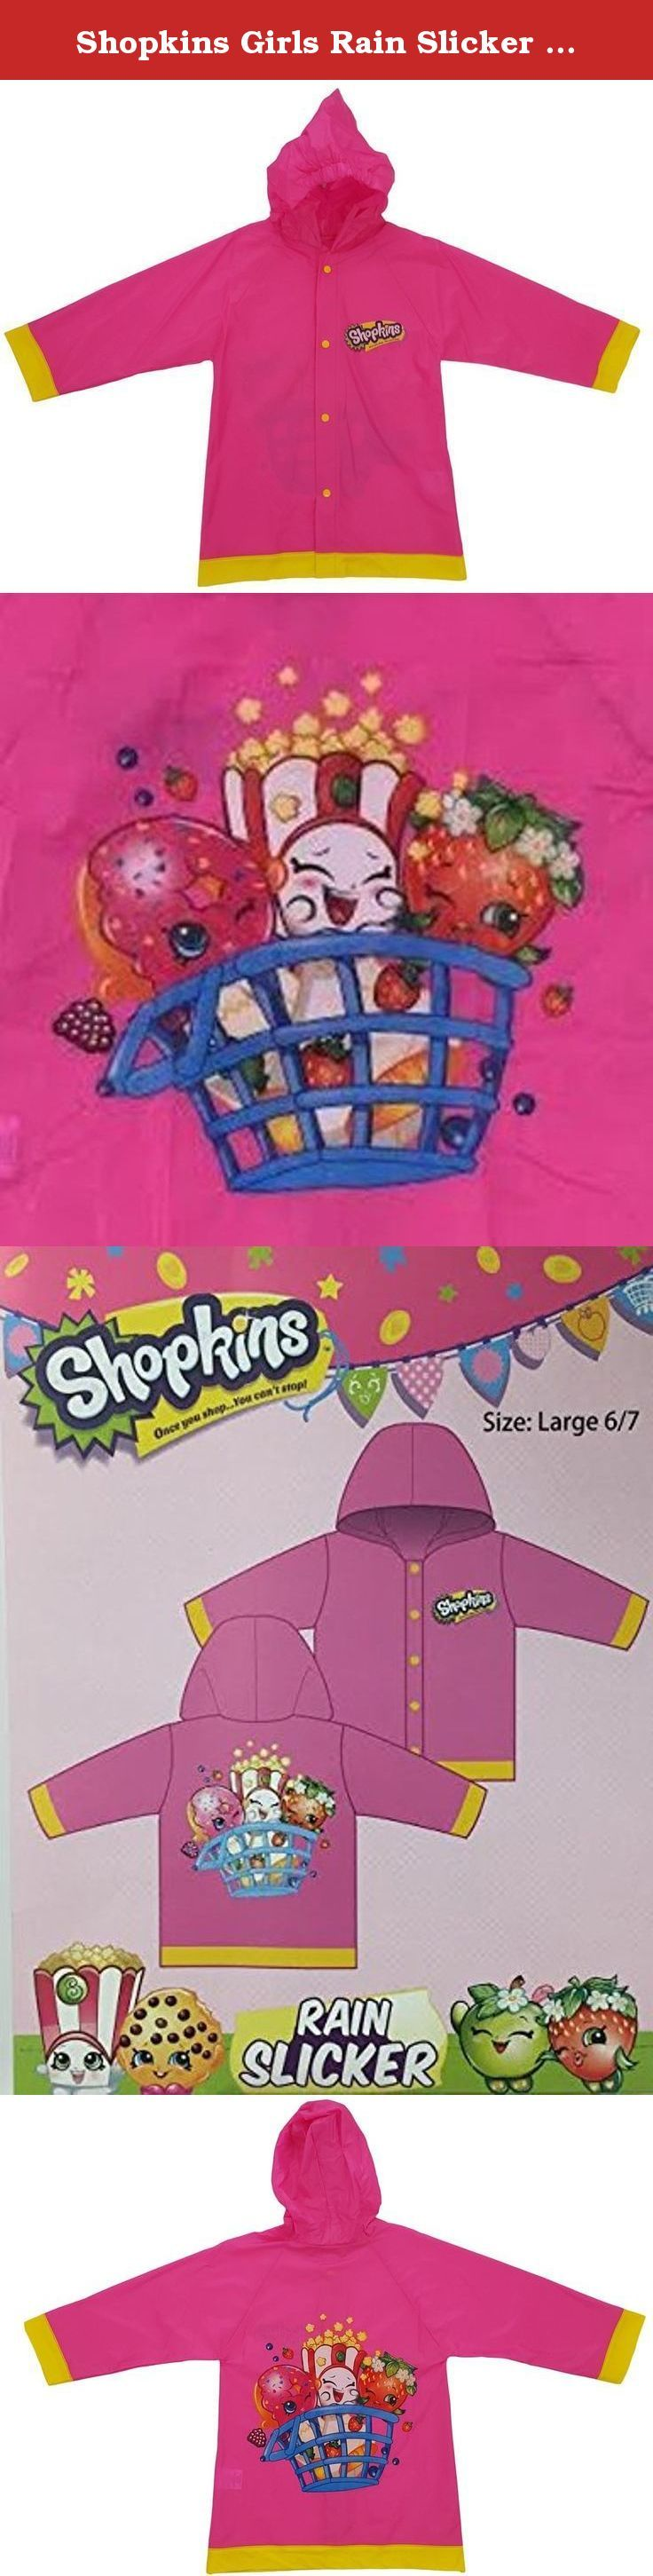 Shopkins Girls Rain Slicker Raincoat (small 2/3). 100% Vinyl. Snaps closure. Colorful graphics and detail on the front and back. Wipes clean with damp cloth. imported.